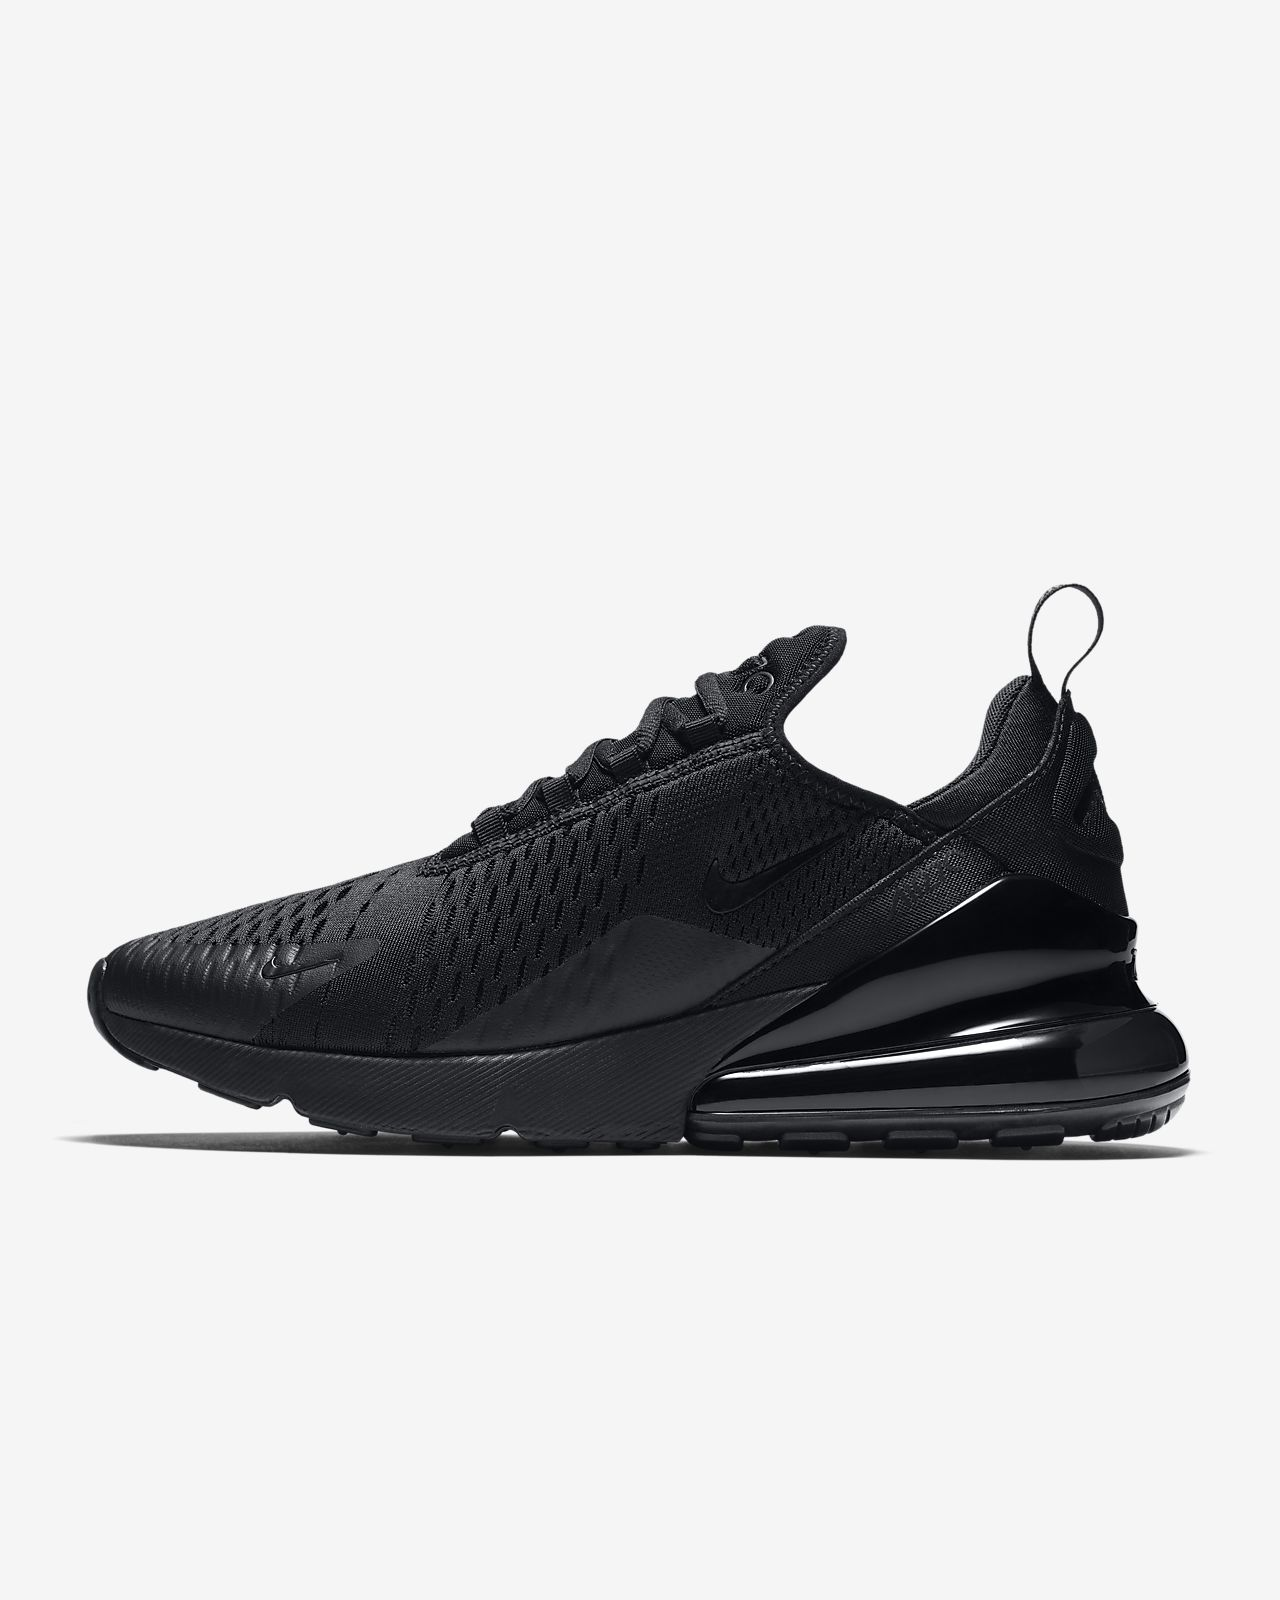 7e35dd22bb42 Nike Air Max 270 Men s Shoe. Nike.com ZA